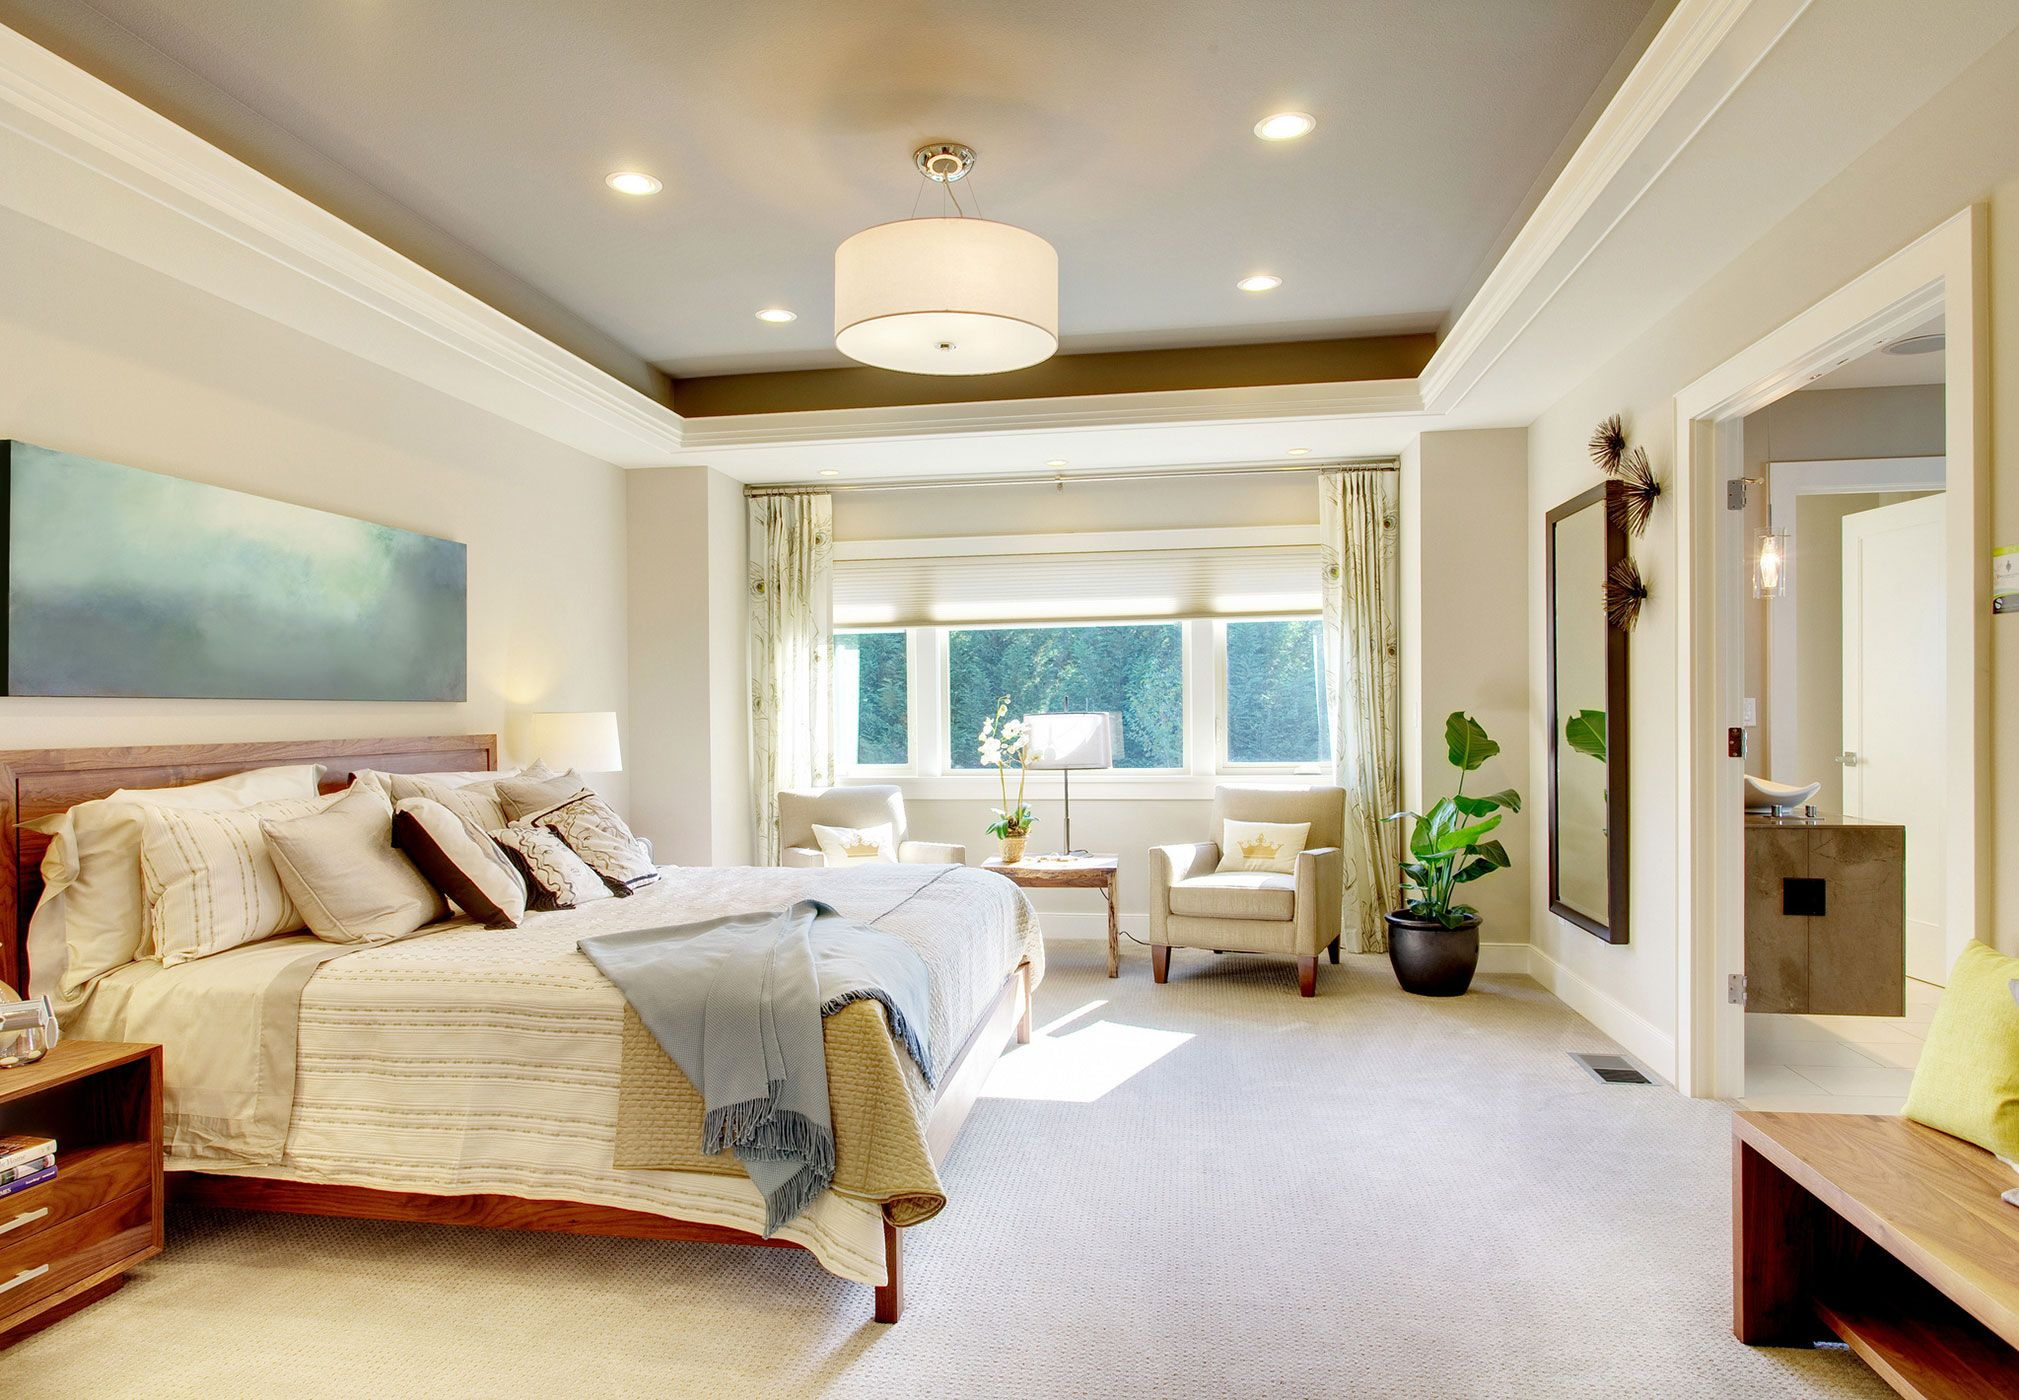 Types Of Lighting For Your Home Master Bedroom Lighting Luxury Bedroom Master Master Bedroom Design